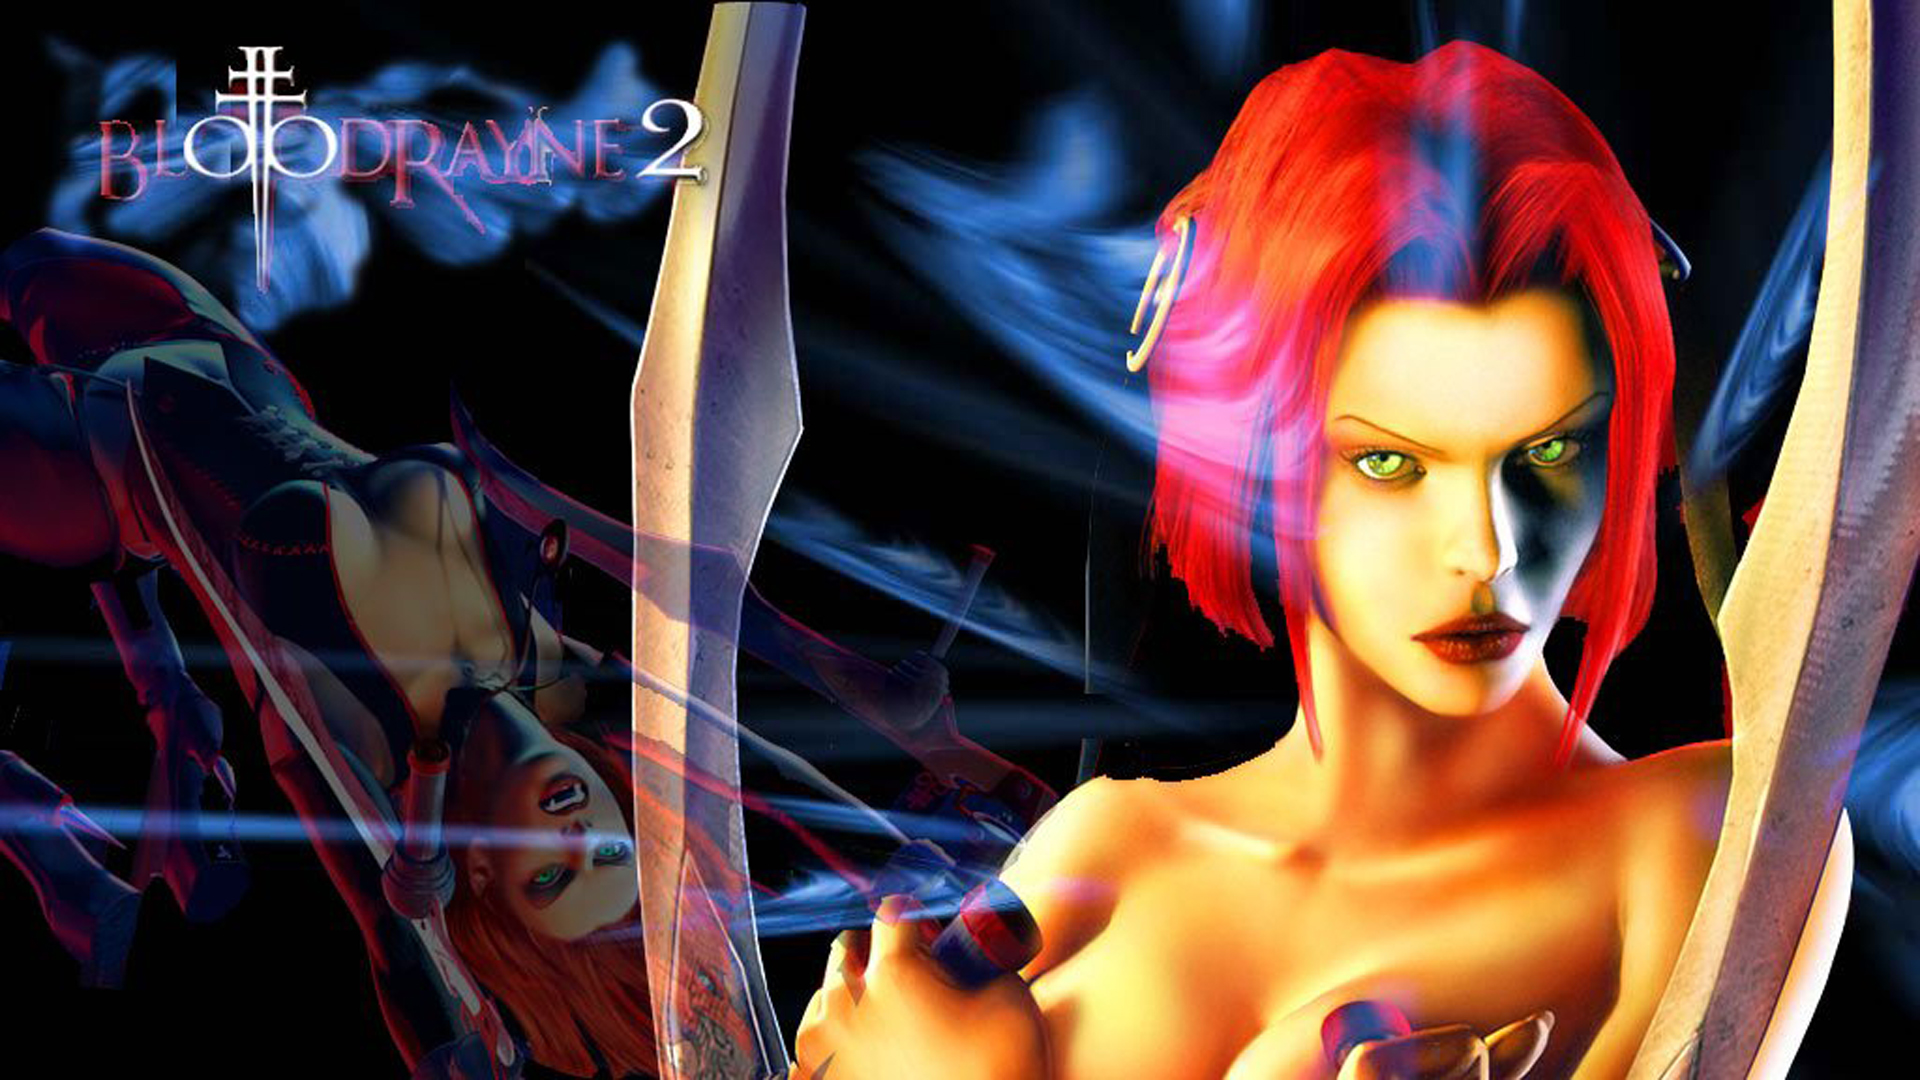 Bloodrayne 2 deliverance sex scenes erotic image